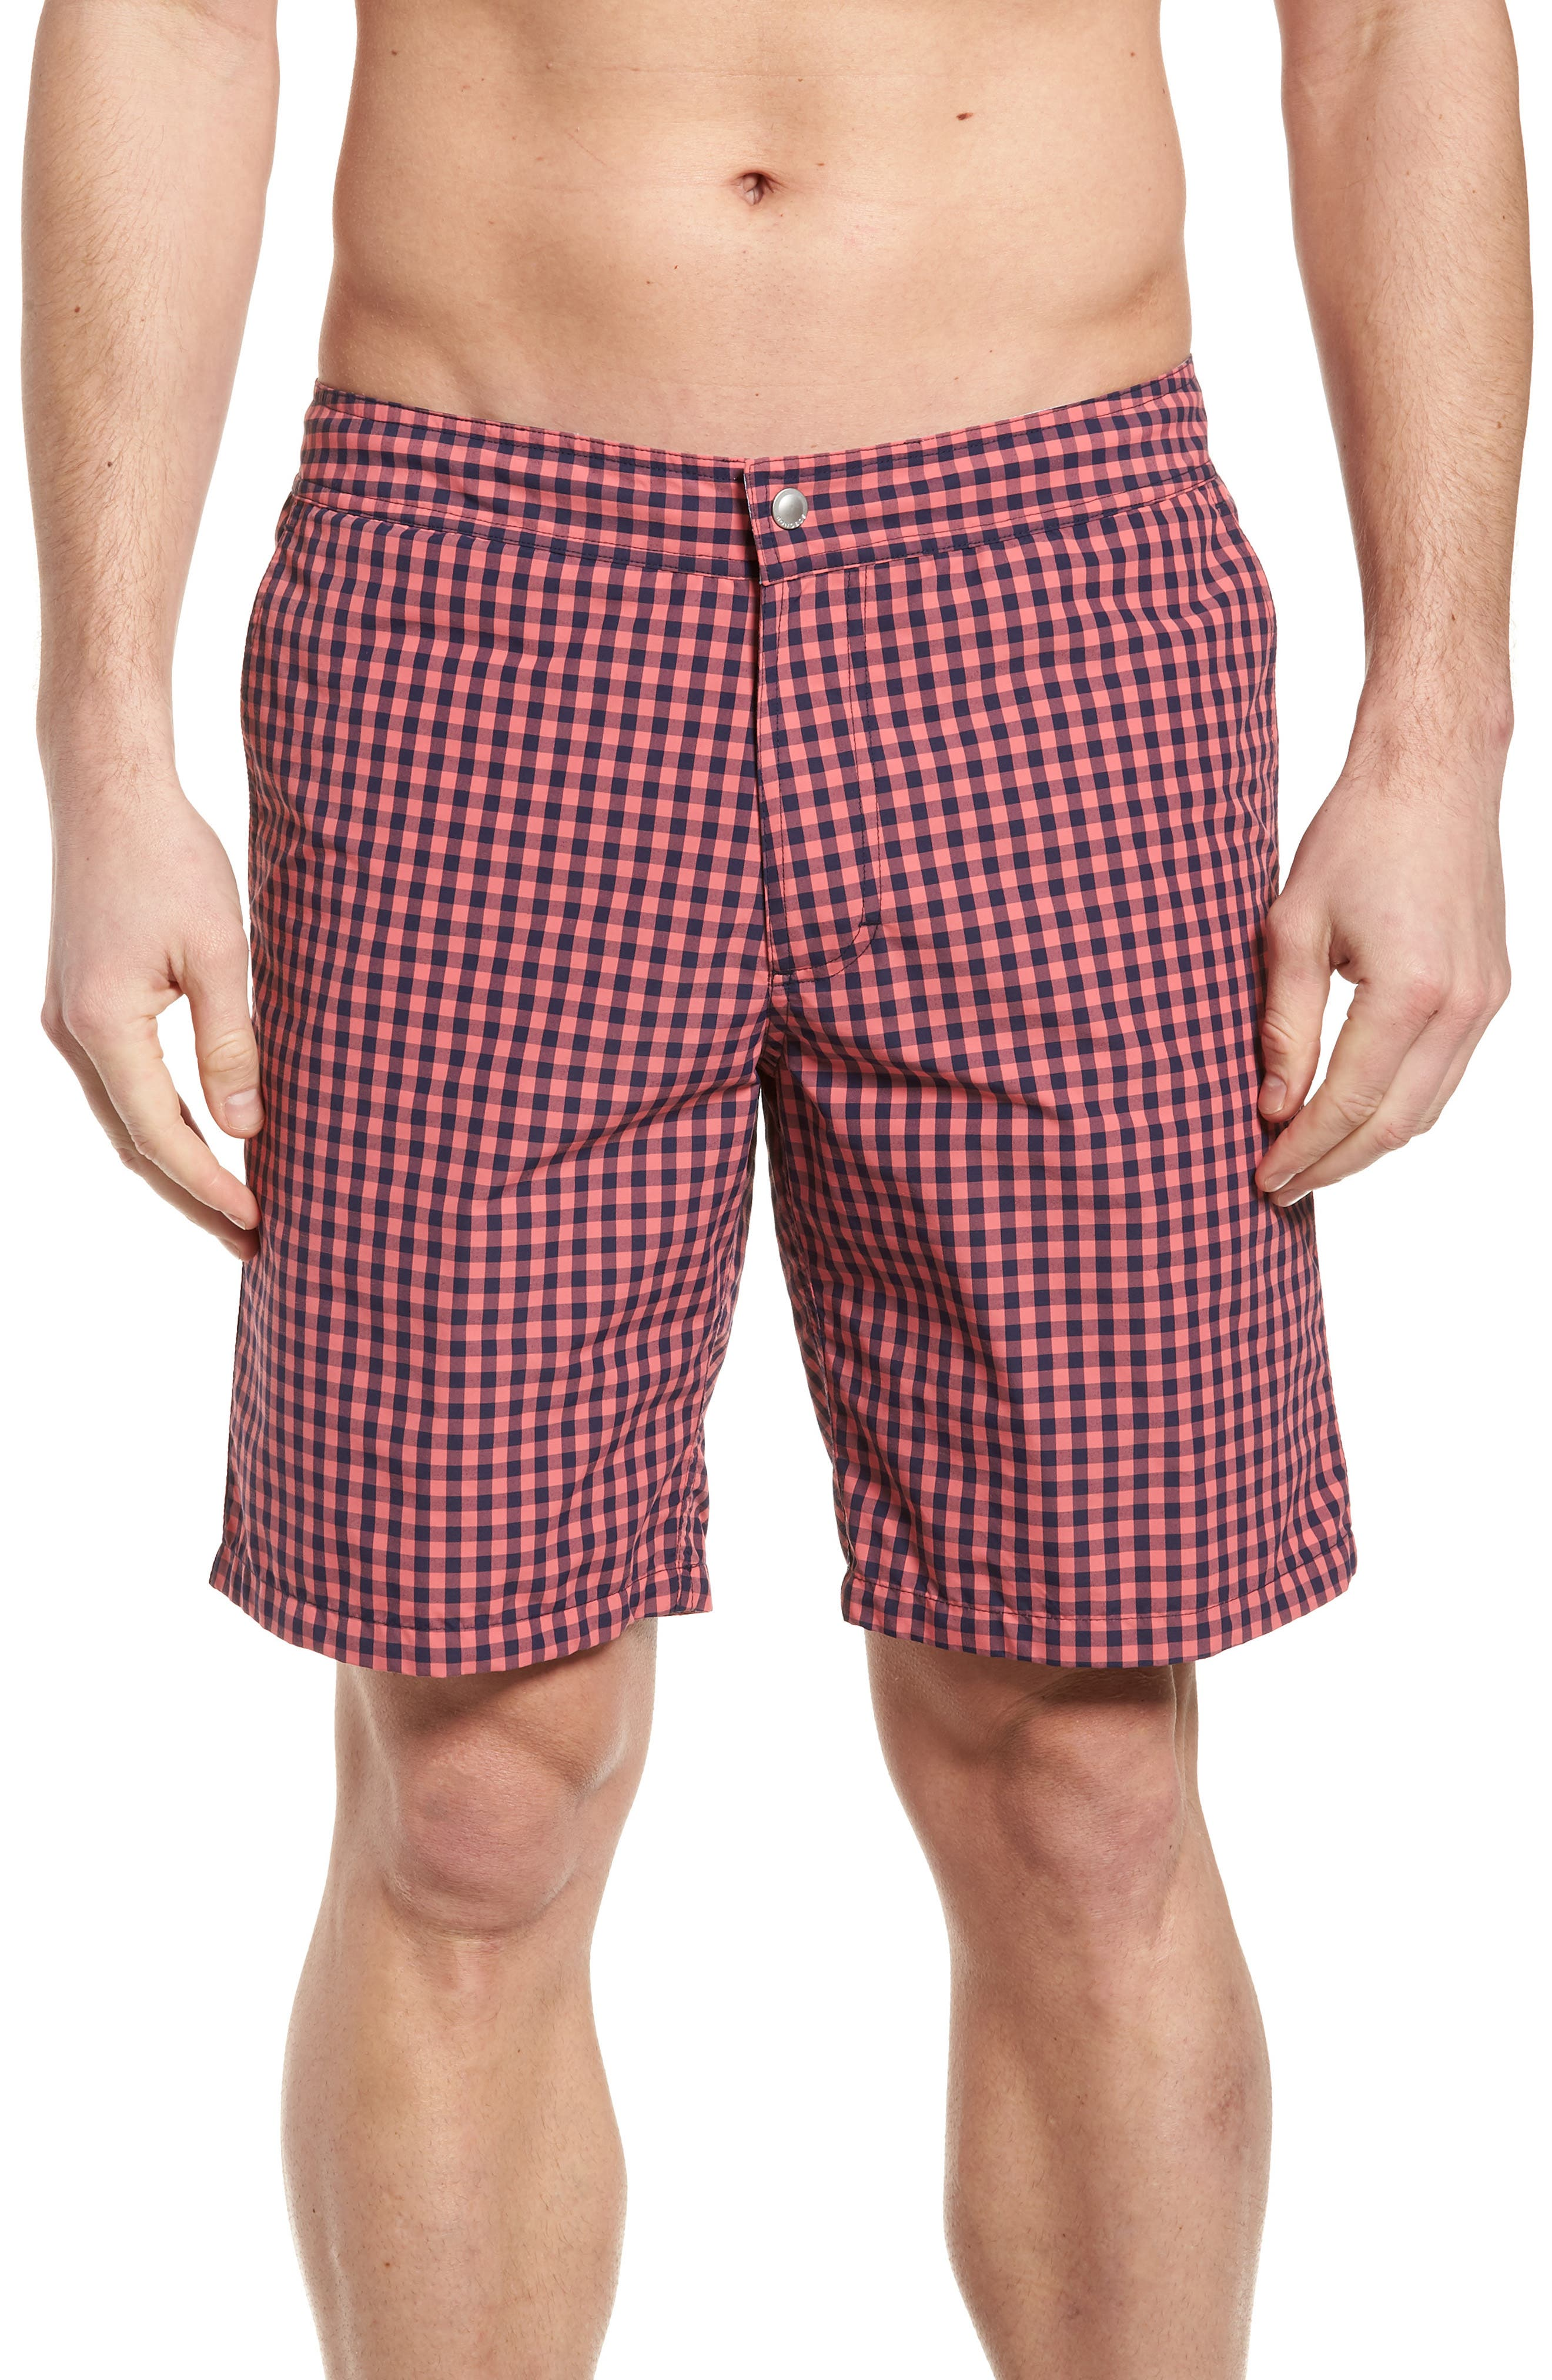 Gingham 9-Inch Swim Trunks,                         Main,                         color, Gulfstream Gingham Blue/ Pink